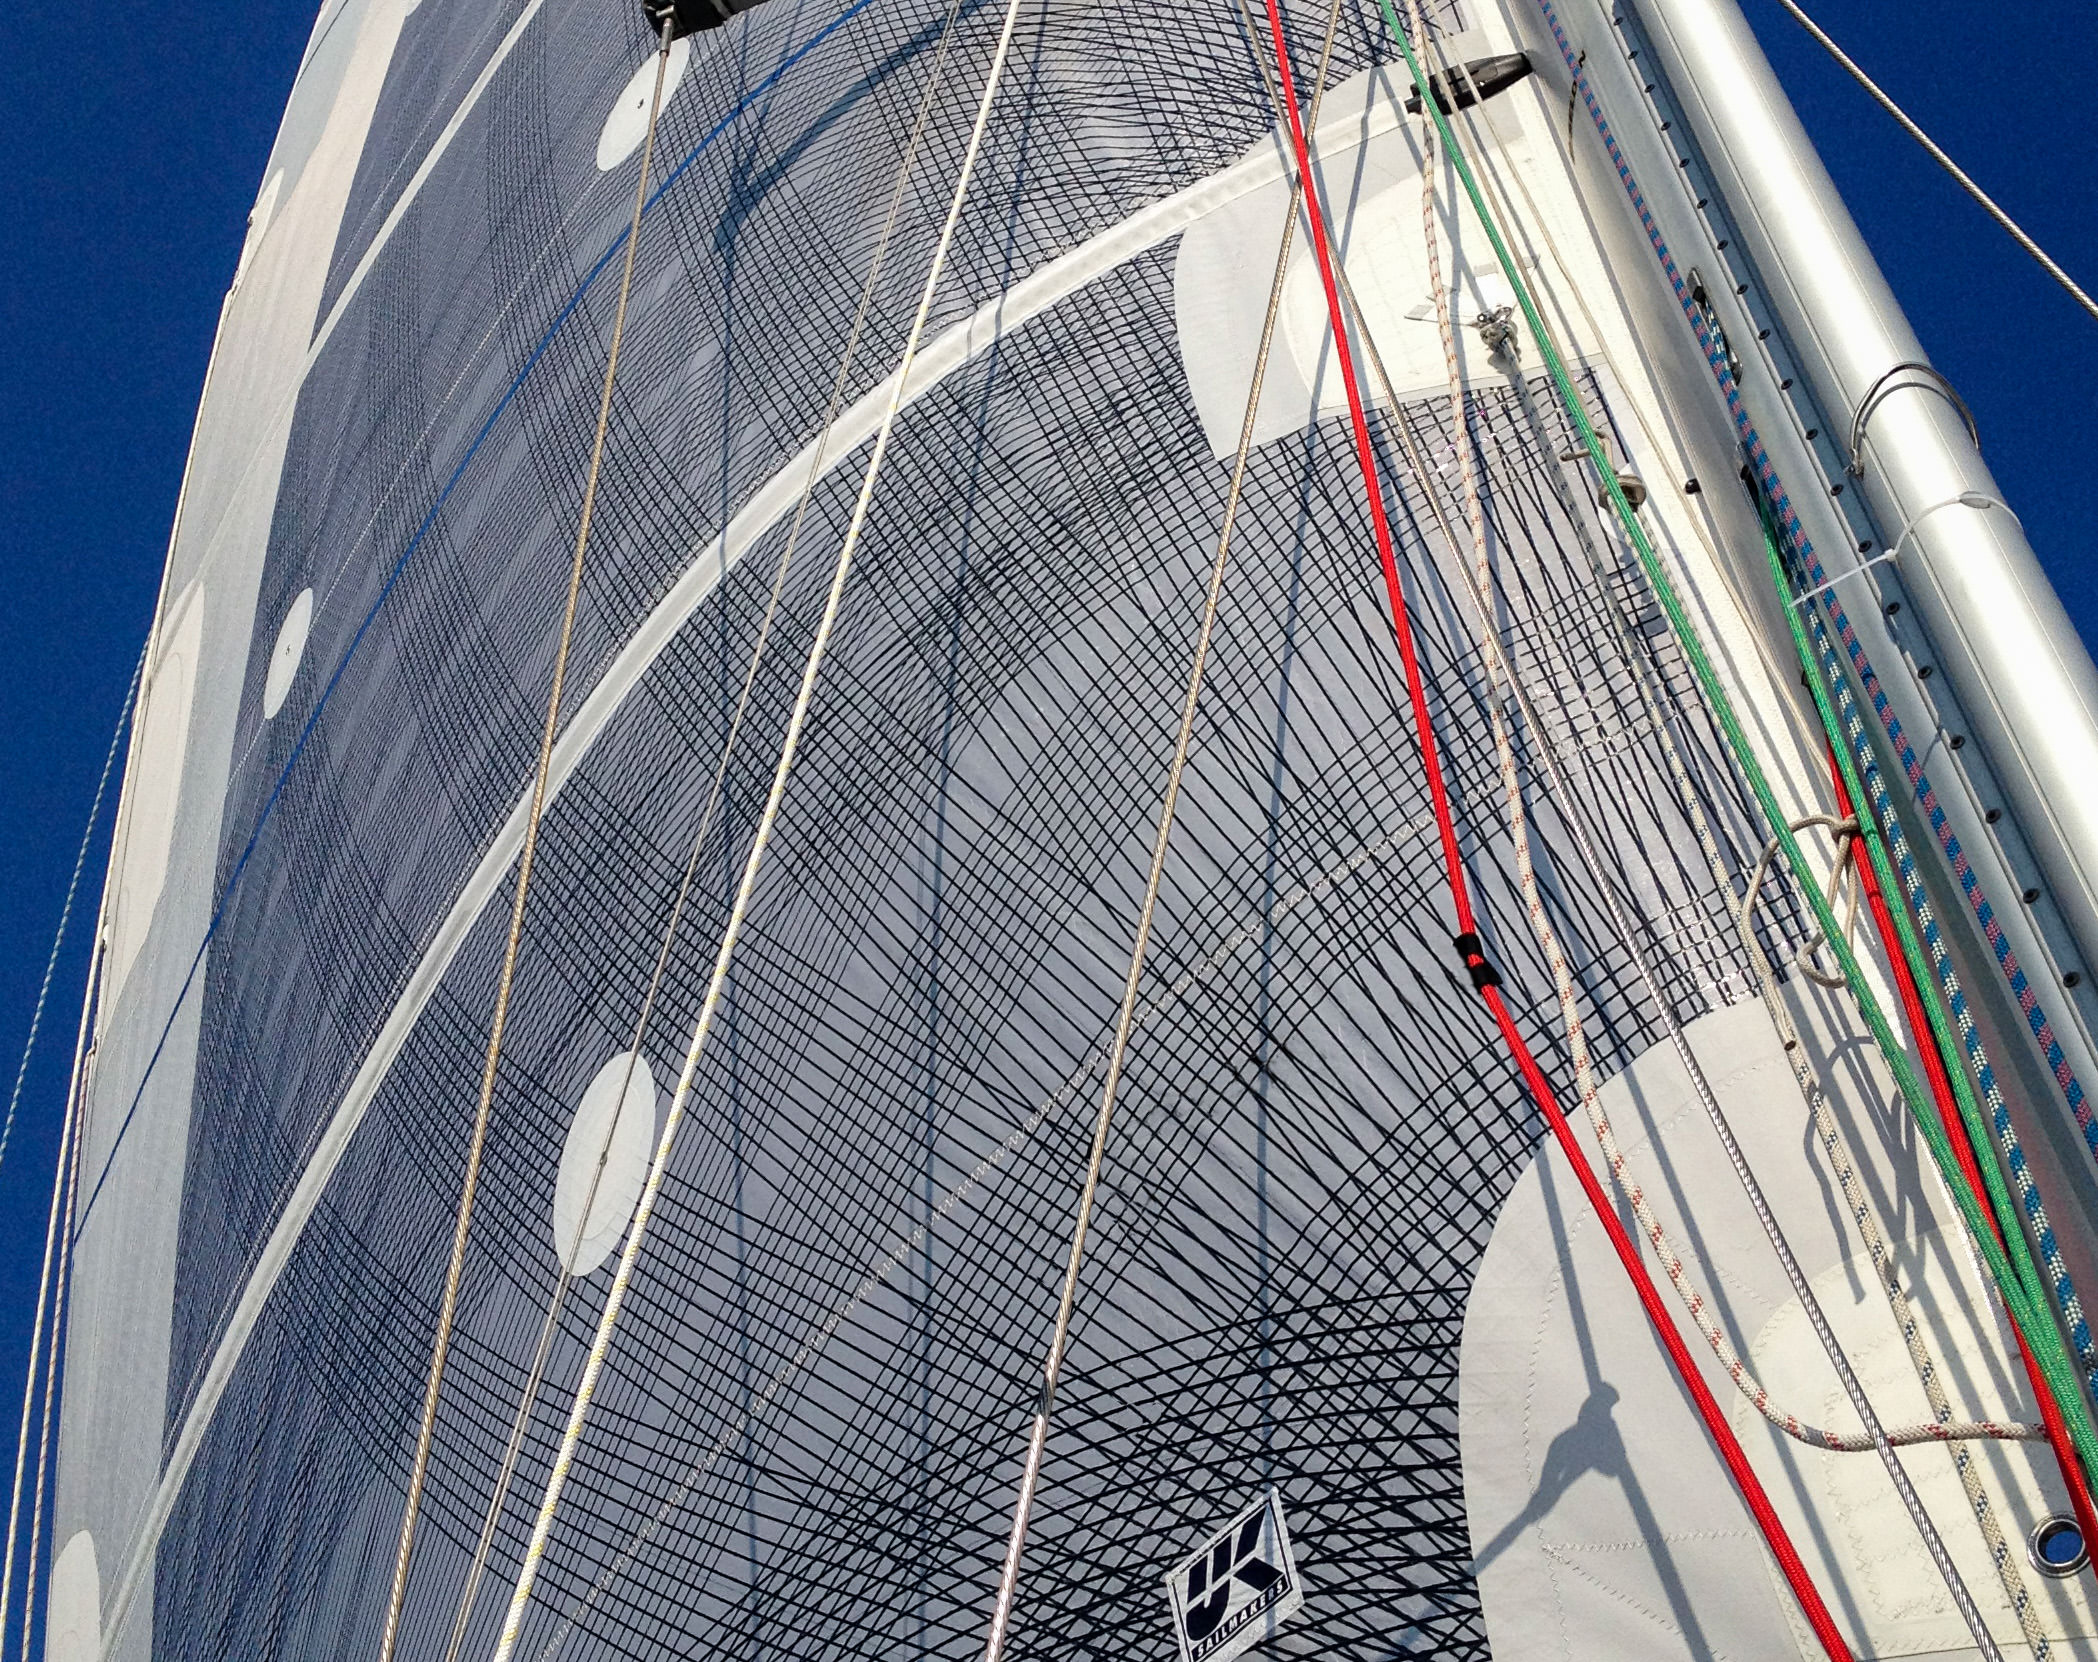 An example of the nearly full coverage of carbon fibers on a mainsail.